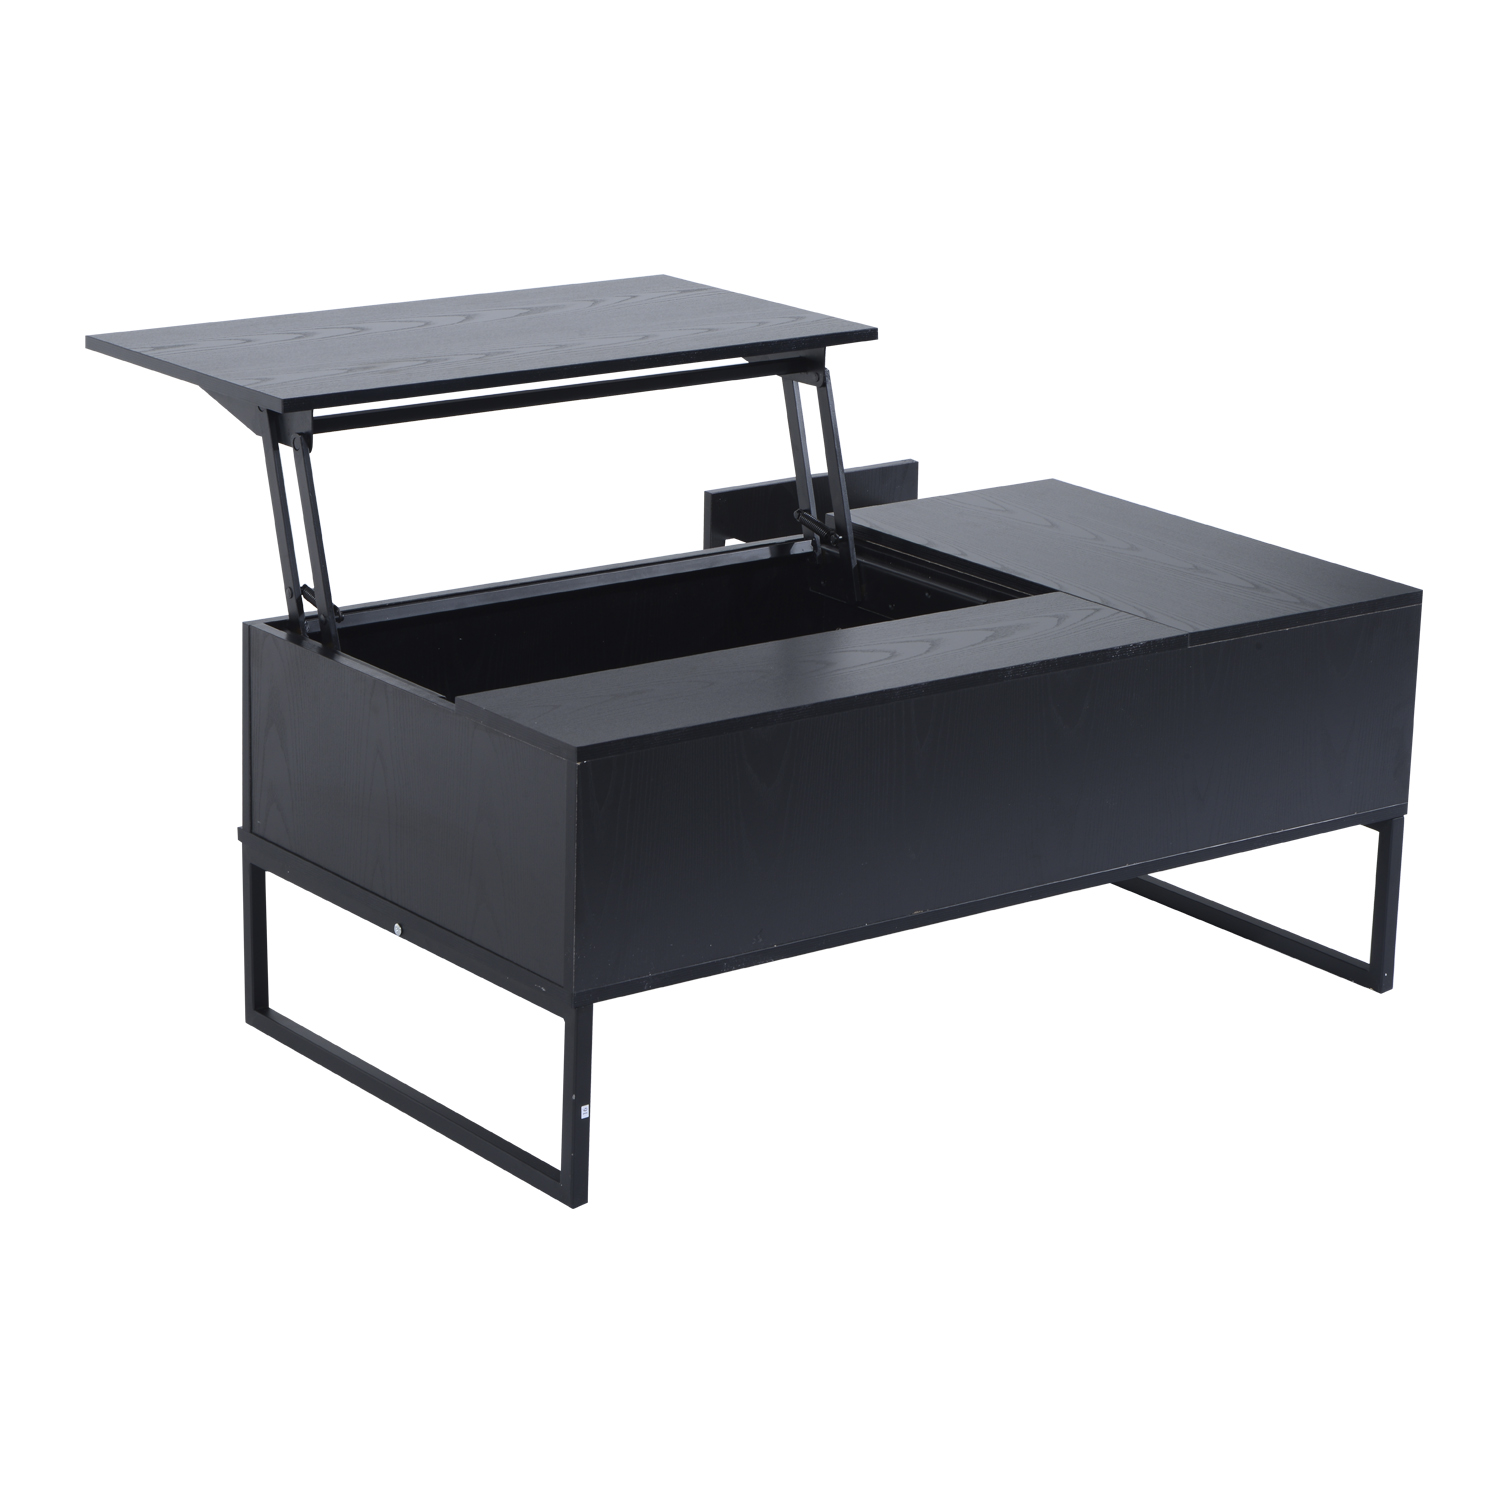 "Walmart Coffee Tables: HomCom 43"" Modern Lift-Top Coffee Table"